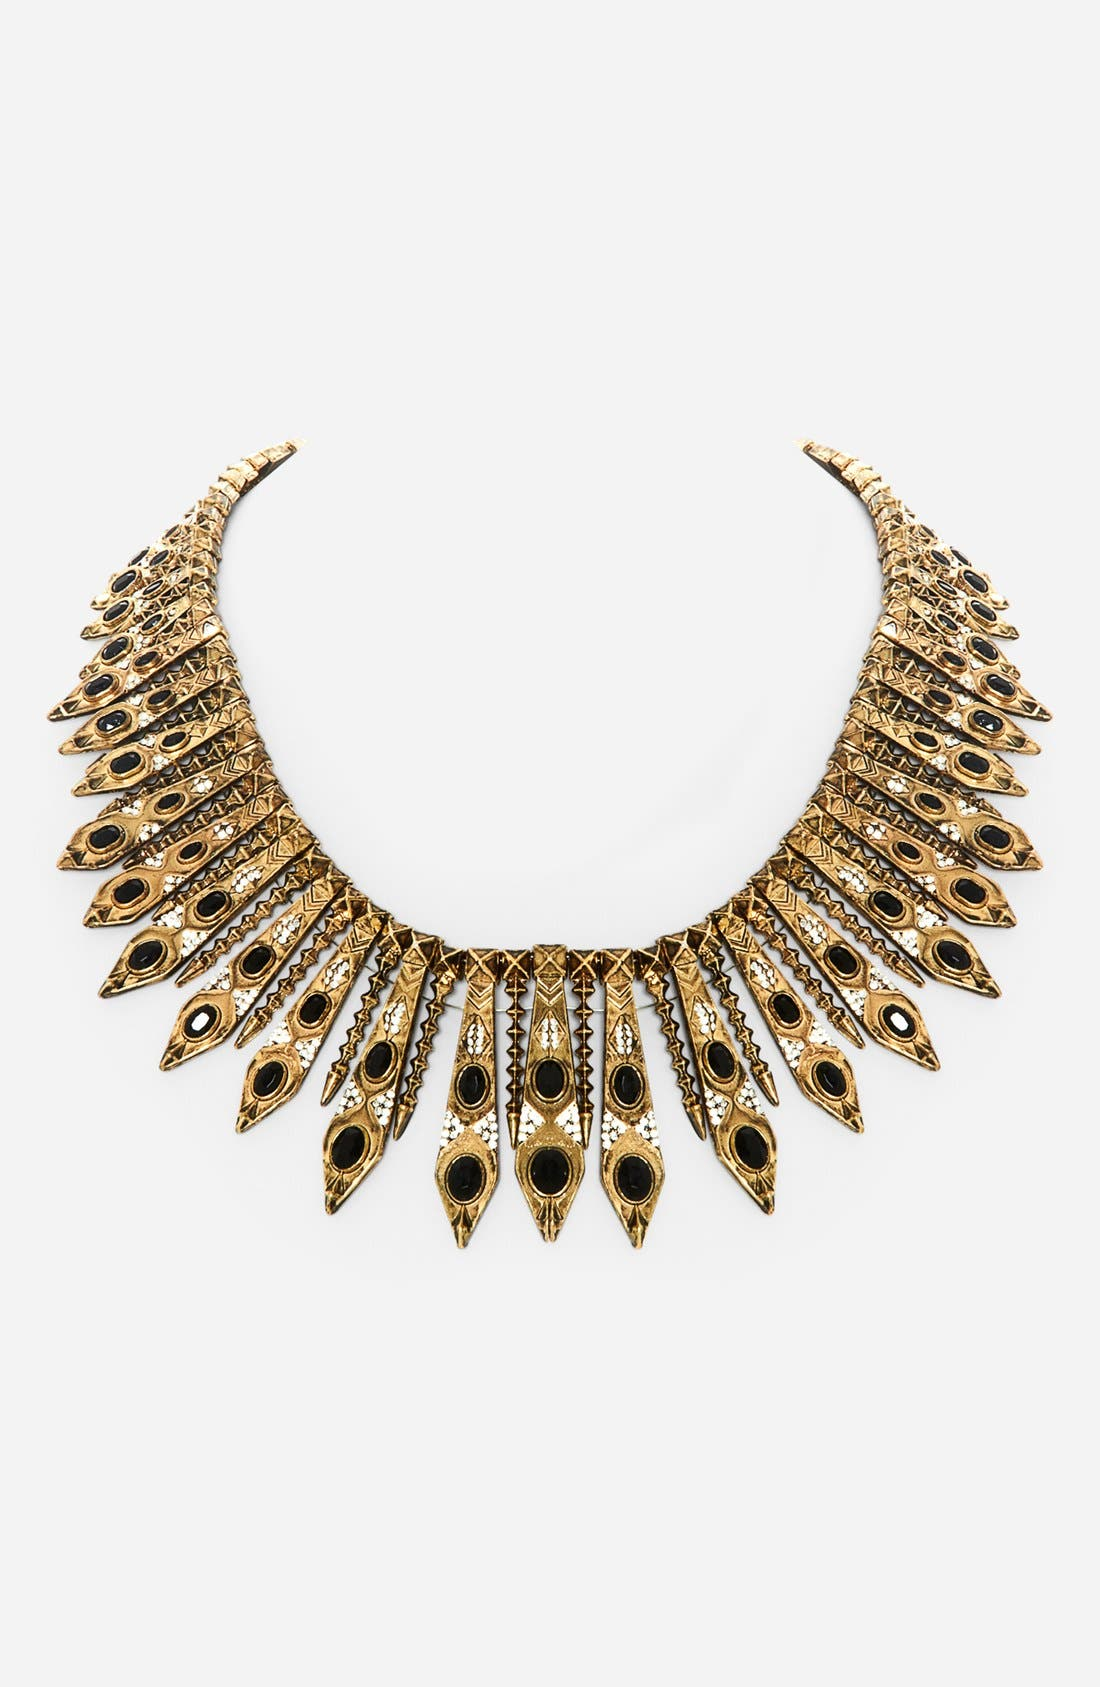 Main Image - House of Harlow 1960 'Gypsy Feather' Collar Necklace